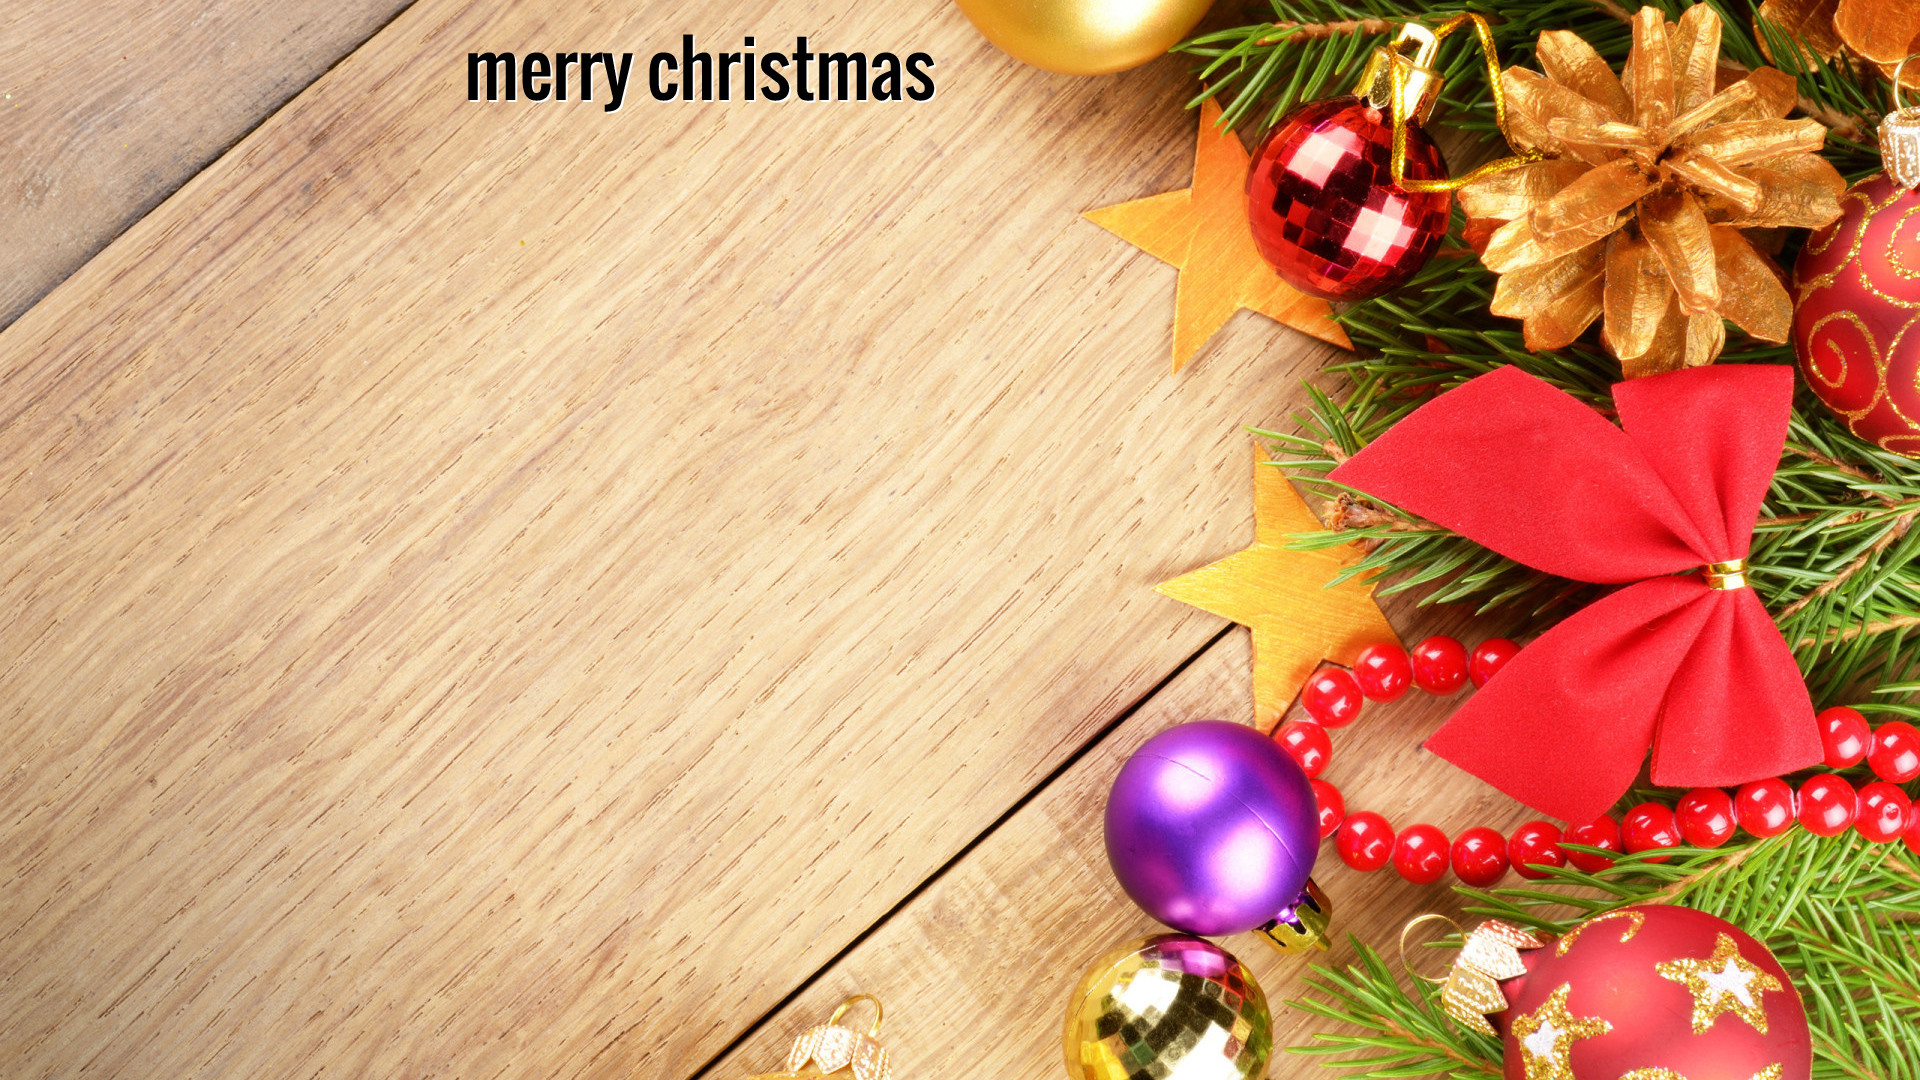 If you have been searching for some of the Christmas Wallpapers Backgrounds  for desktops then you